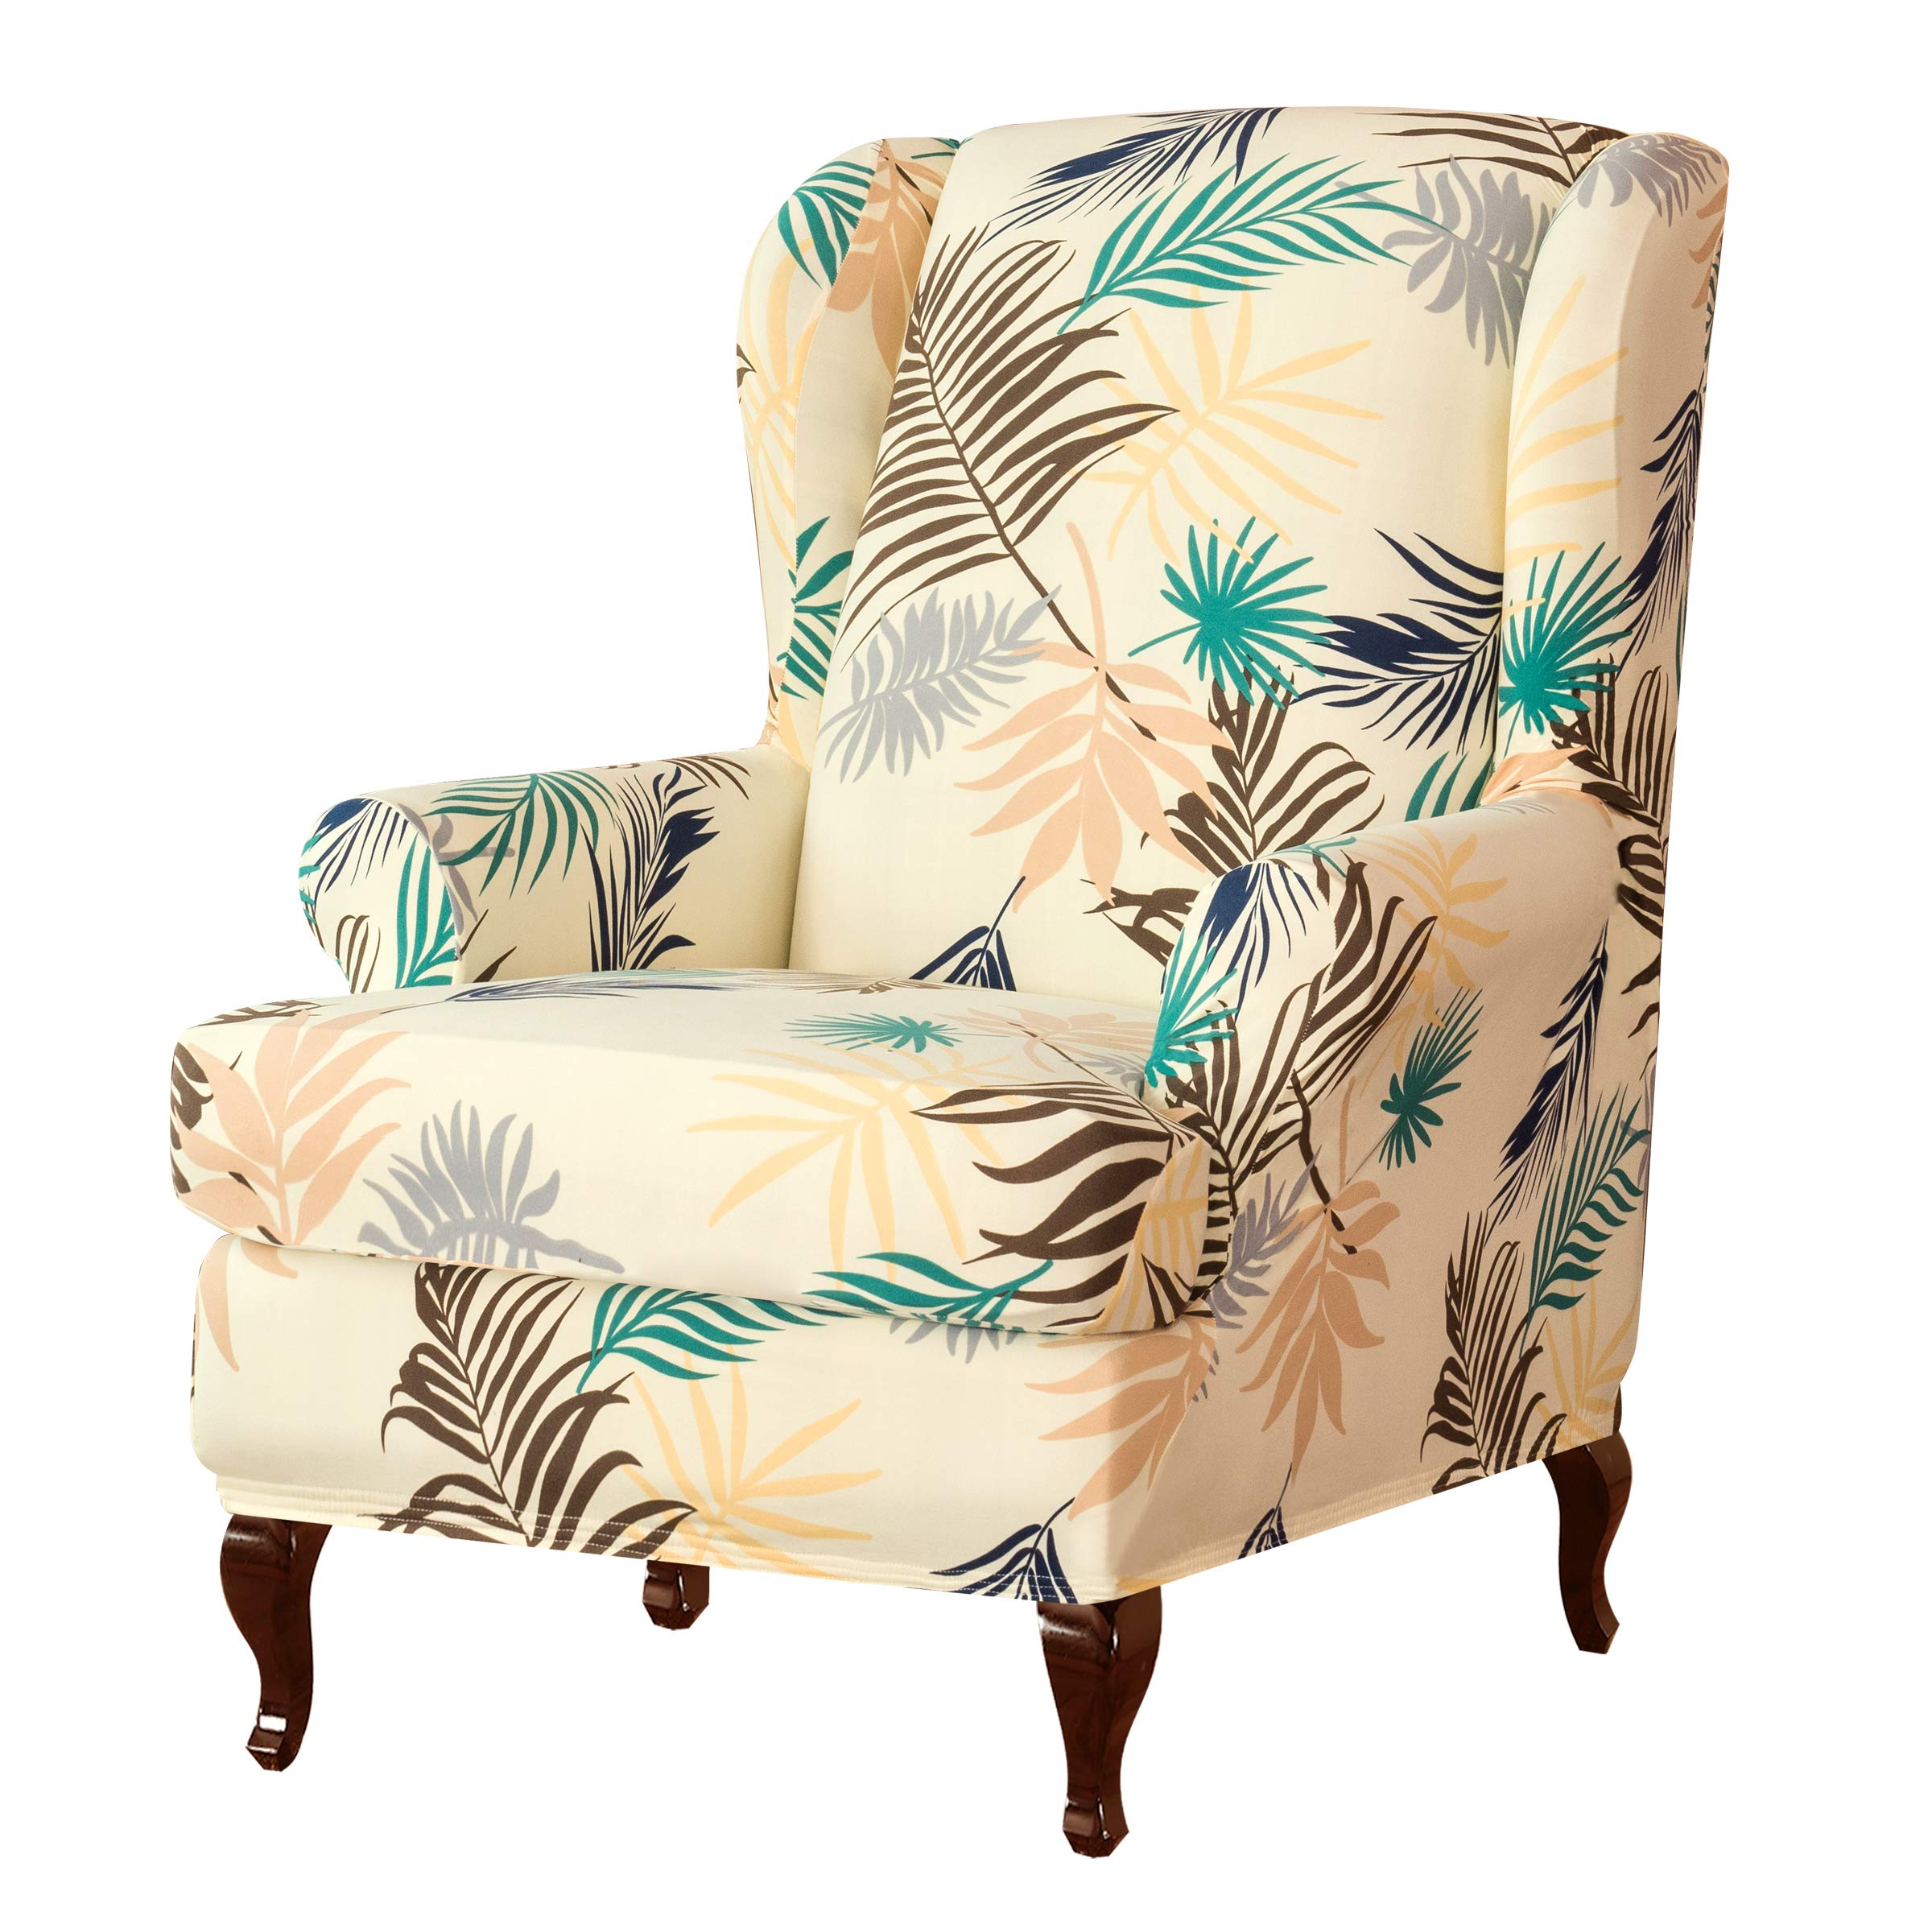 Subrtex Wingback Chair Slipcovers Stretchy Wing Armchair Covers Detachable Spandex Sofa Covers Leaves Printed Furniture Protector (Yellow) by Subrtex